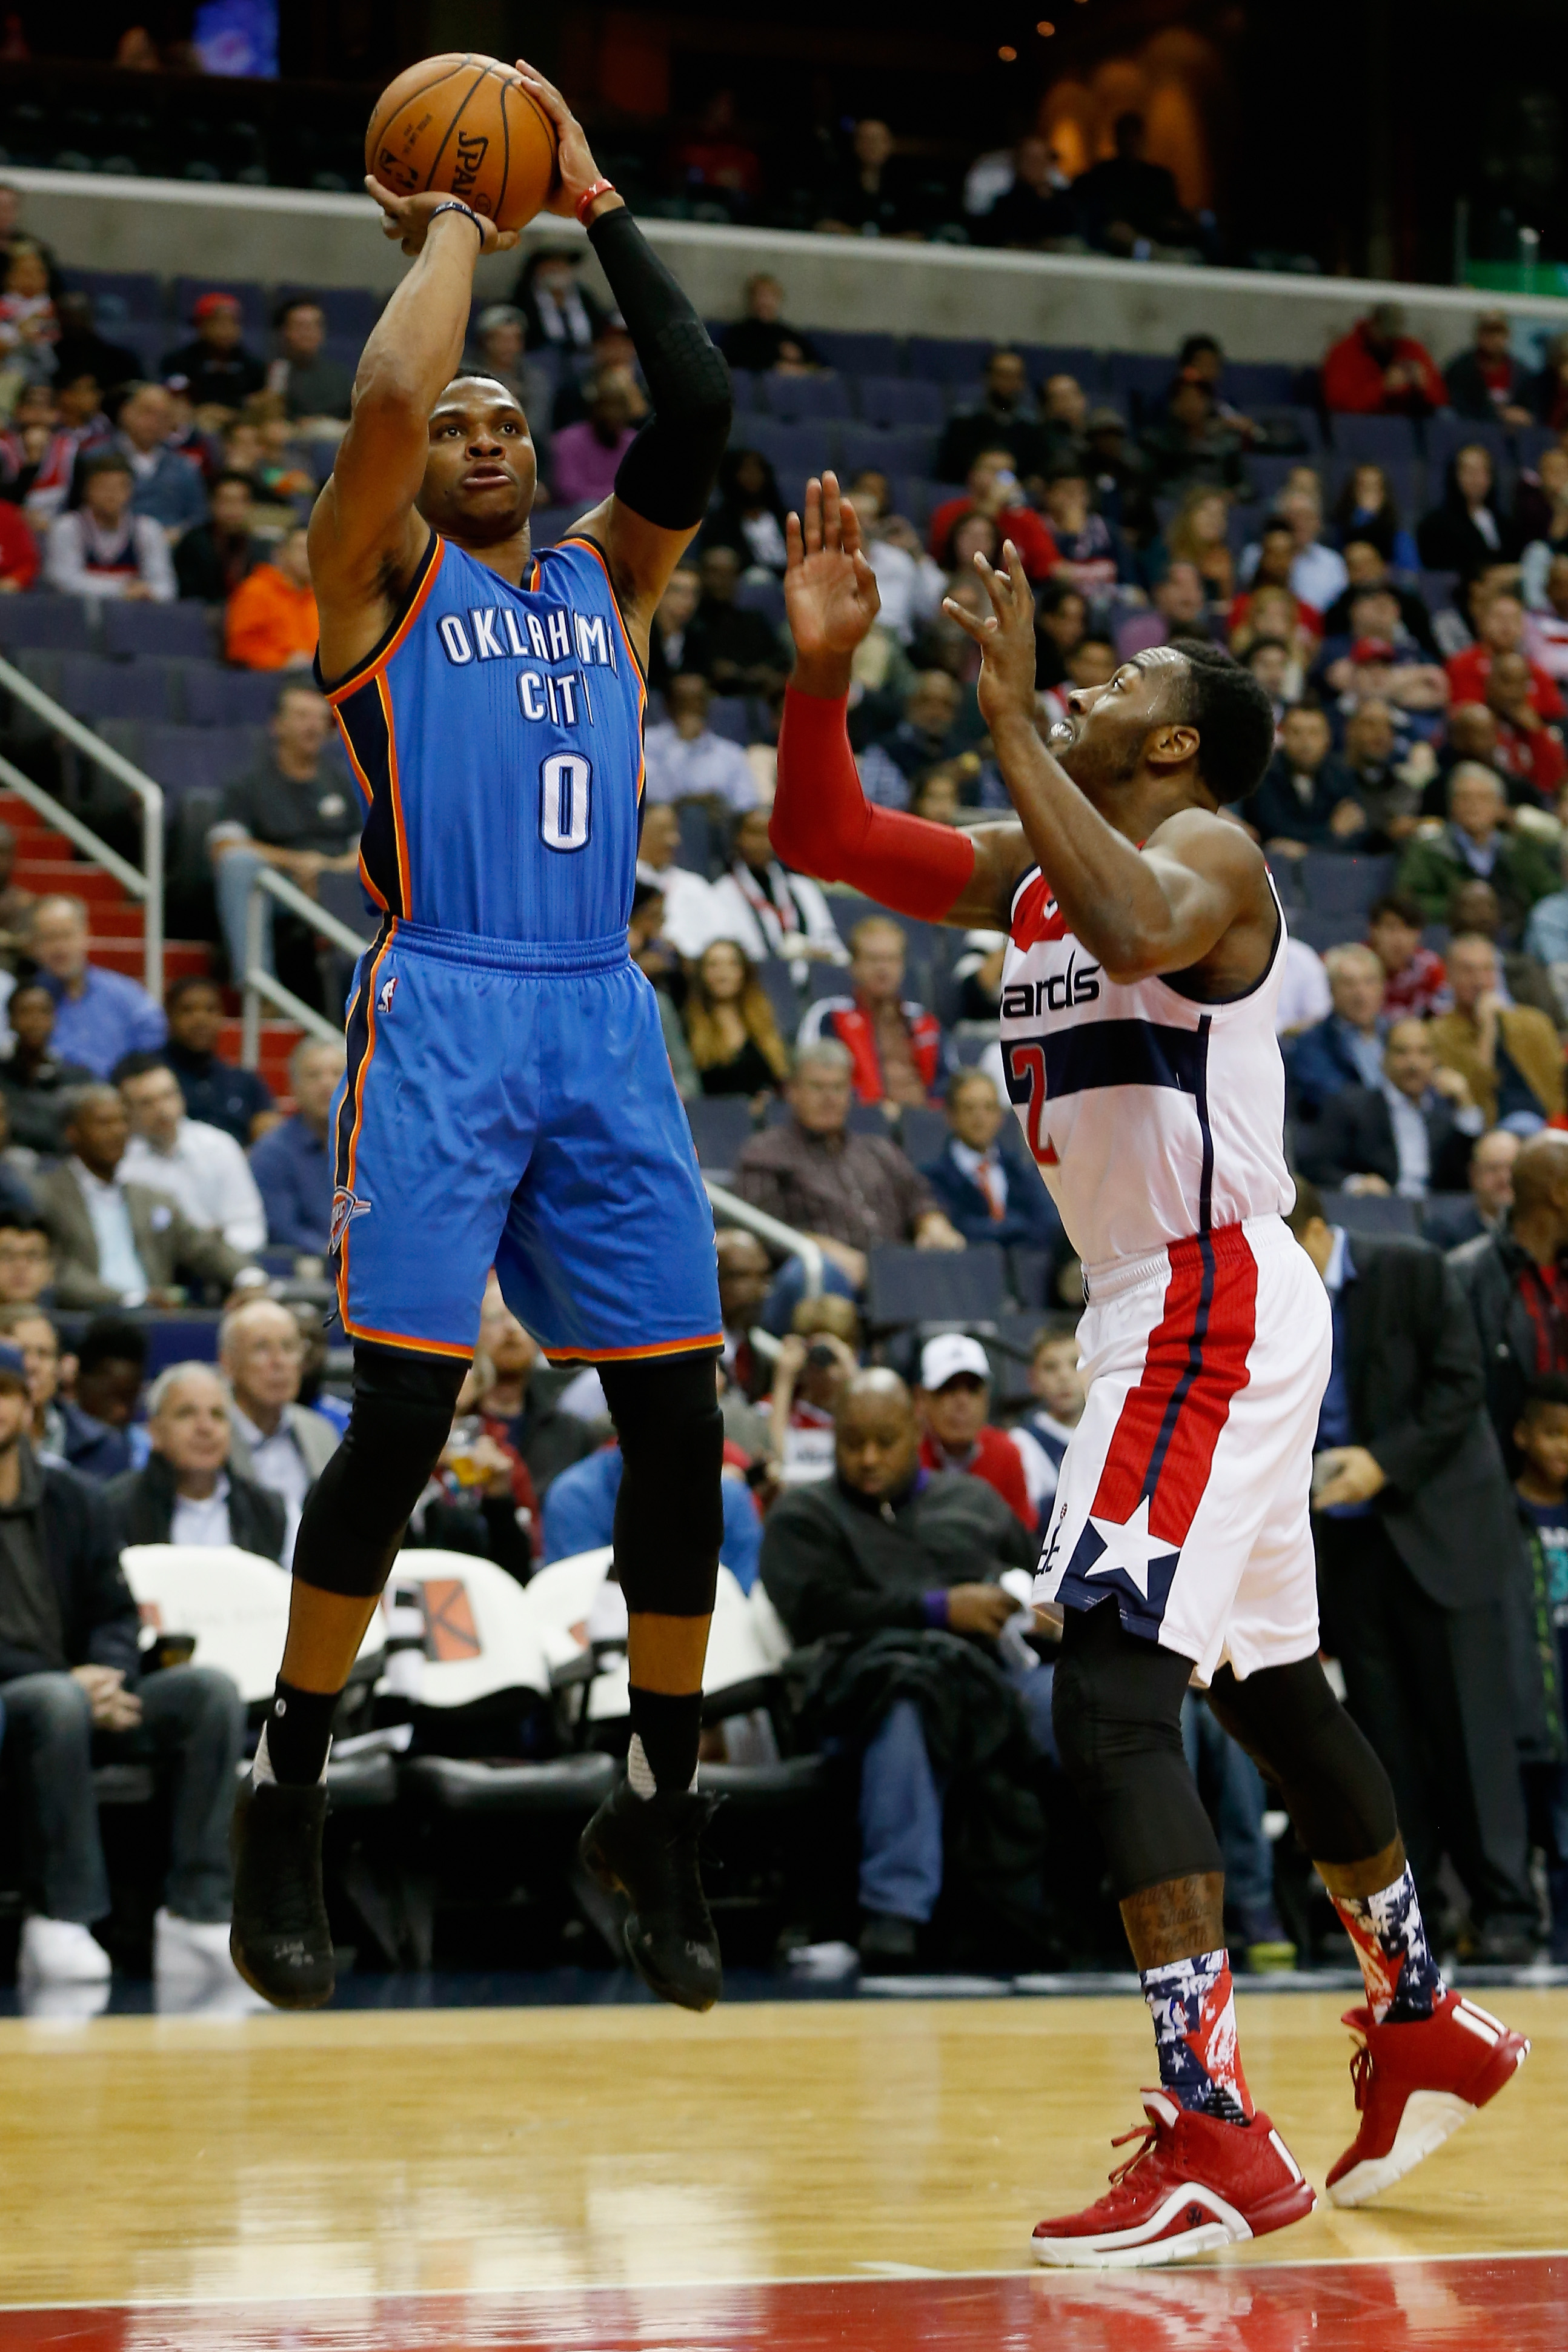 WASHINGTON, DC - NOVEMBER 10: Russell Westbrook #0 of the Oklahoma City Thunder puts a shot over the defense of John Wall #2 of the Washington Wizards in the first half at Verizon Center on November 10, 2015 in Washington, DC. (Photo by Rob Carr/Getty Ima